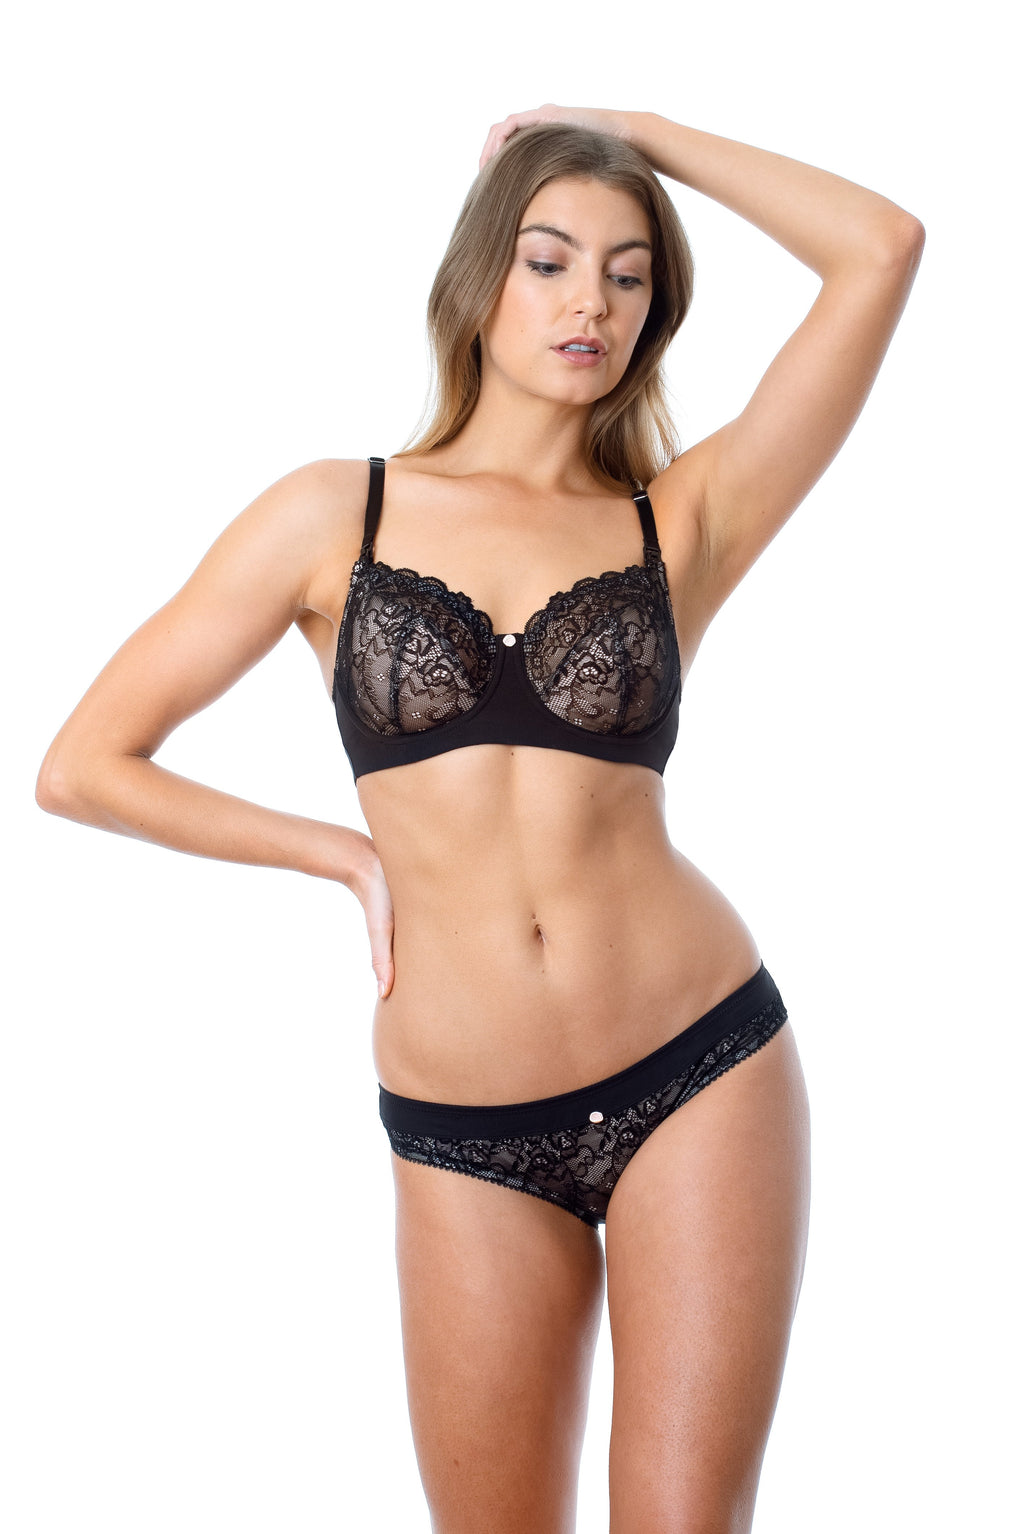 TEMPTATION BLACK HOTMILK NURSING AND BREASTFEEDING BRA